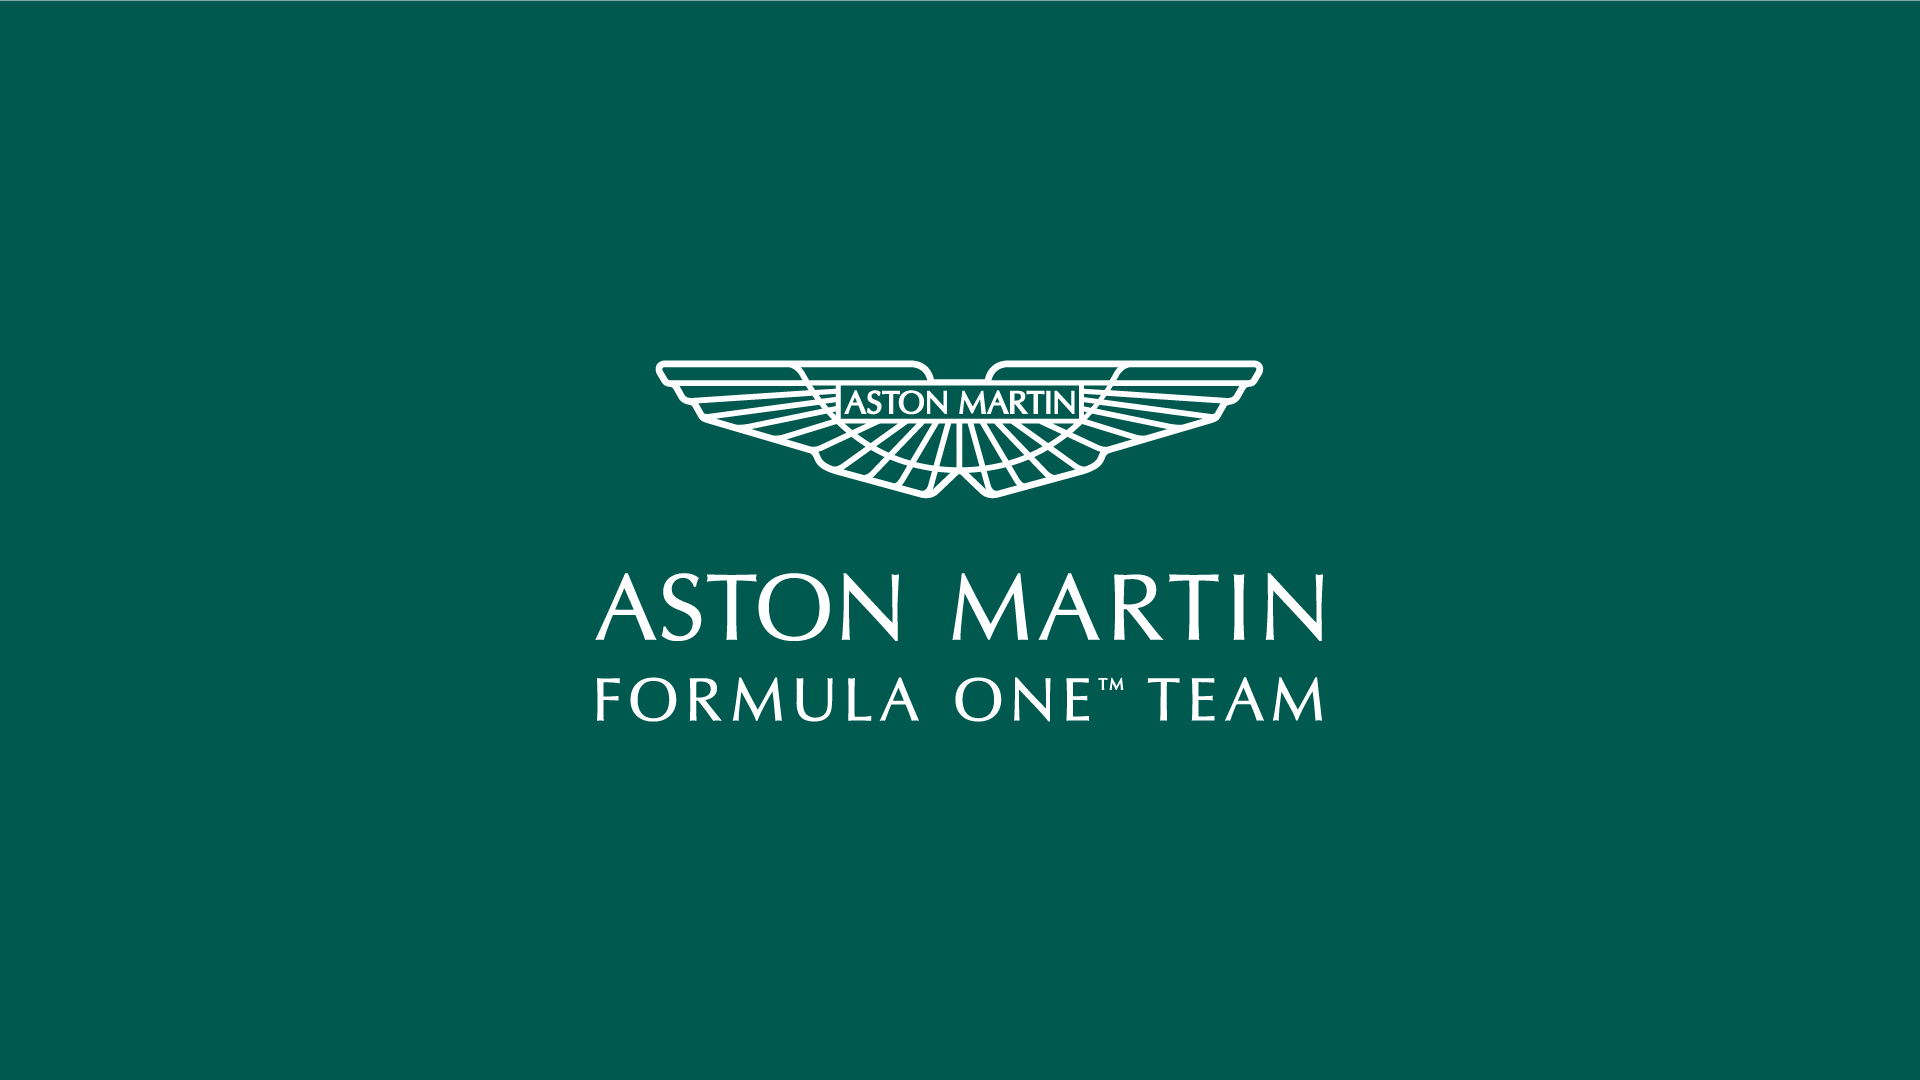 Aston Martin To Reveal New Livery At 2021 Season Launch In February Formula 1